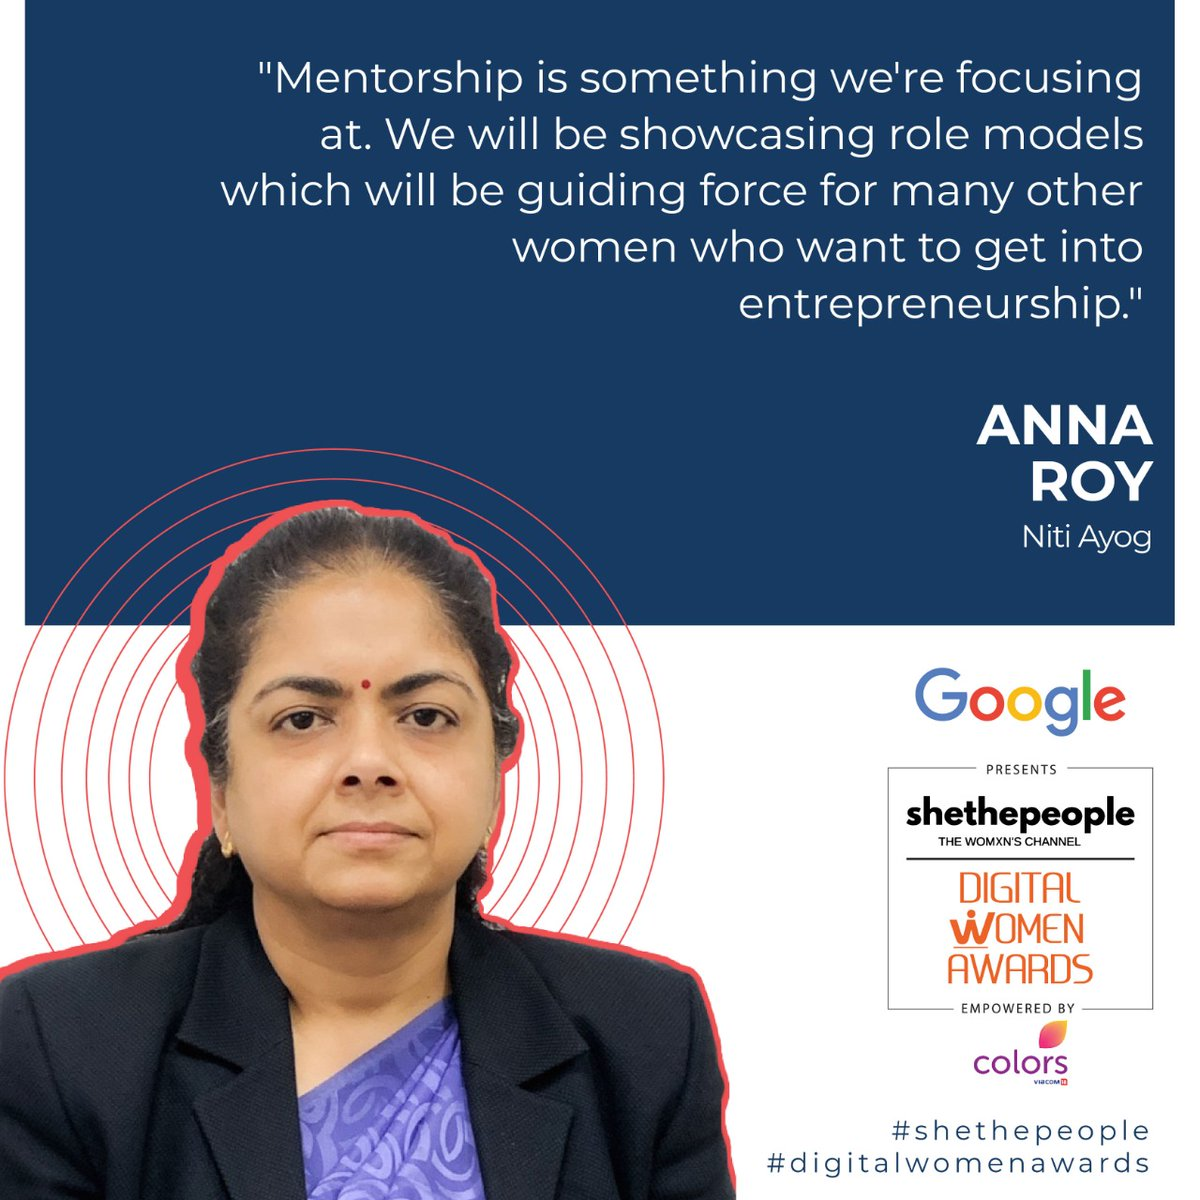 @annaroy9 at #DigitalWomenAwards talking about the role of mentorship